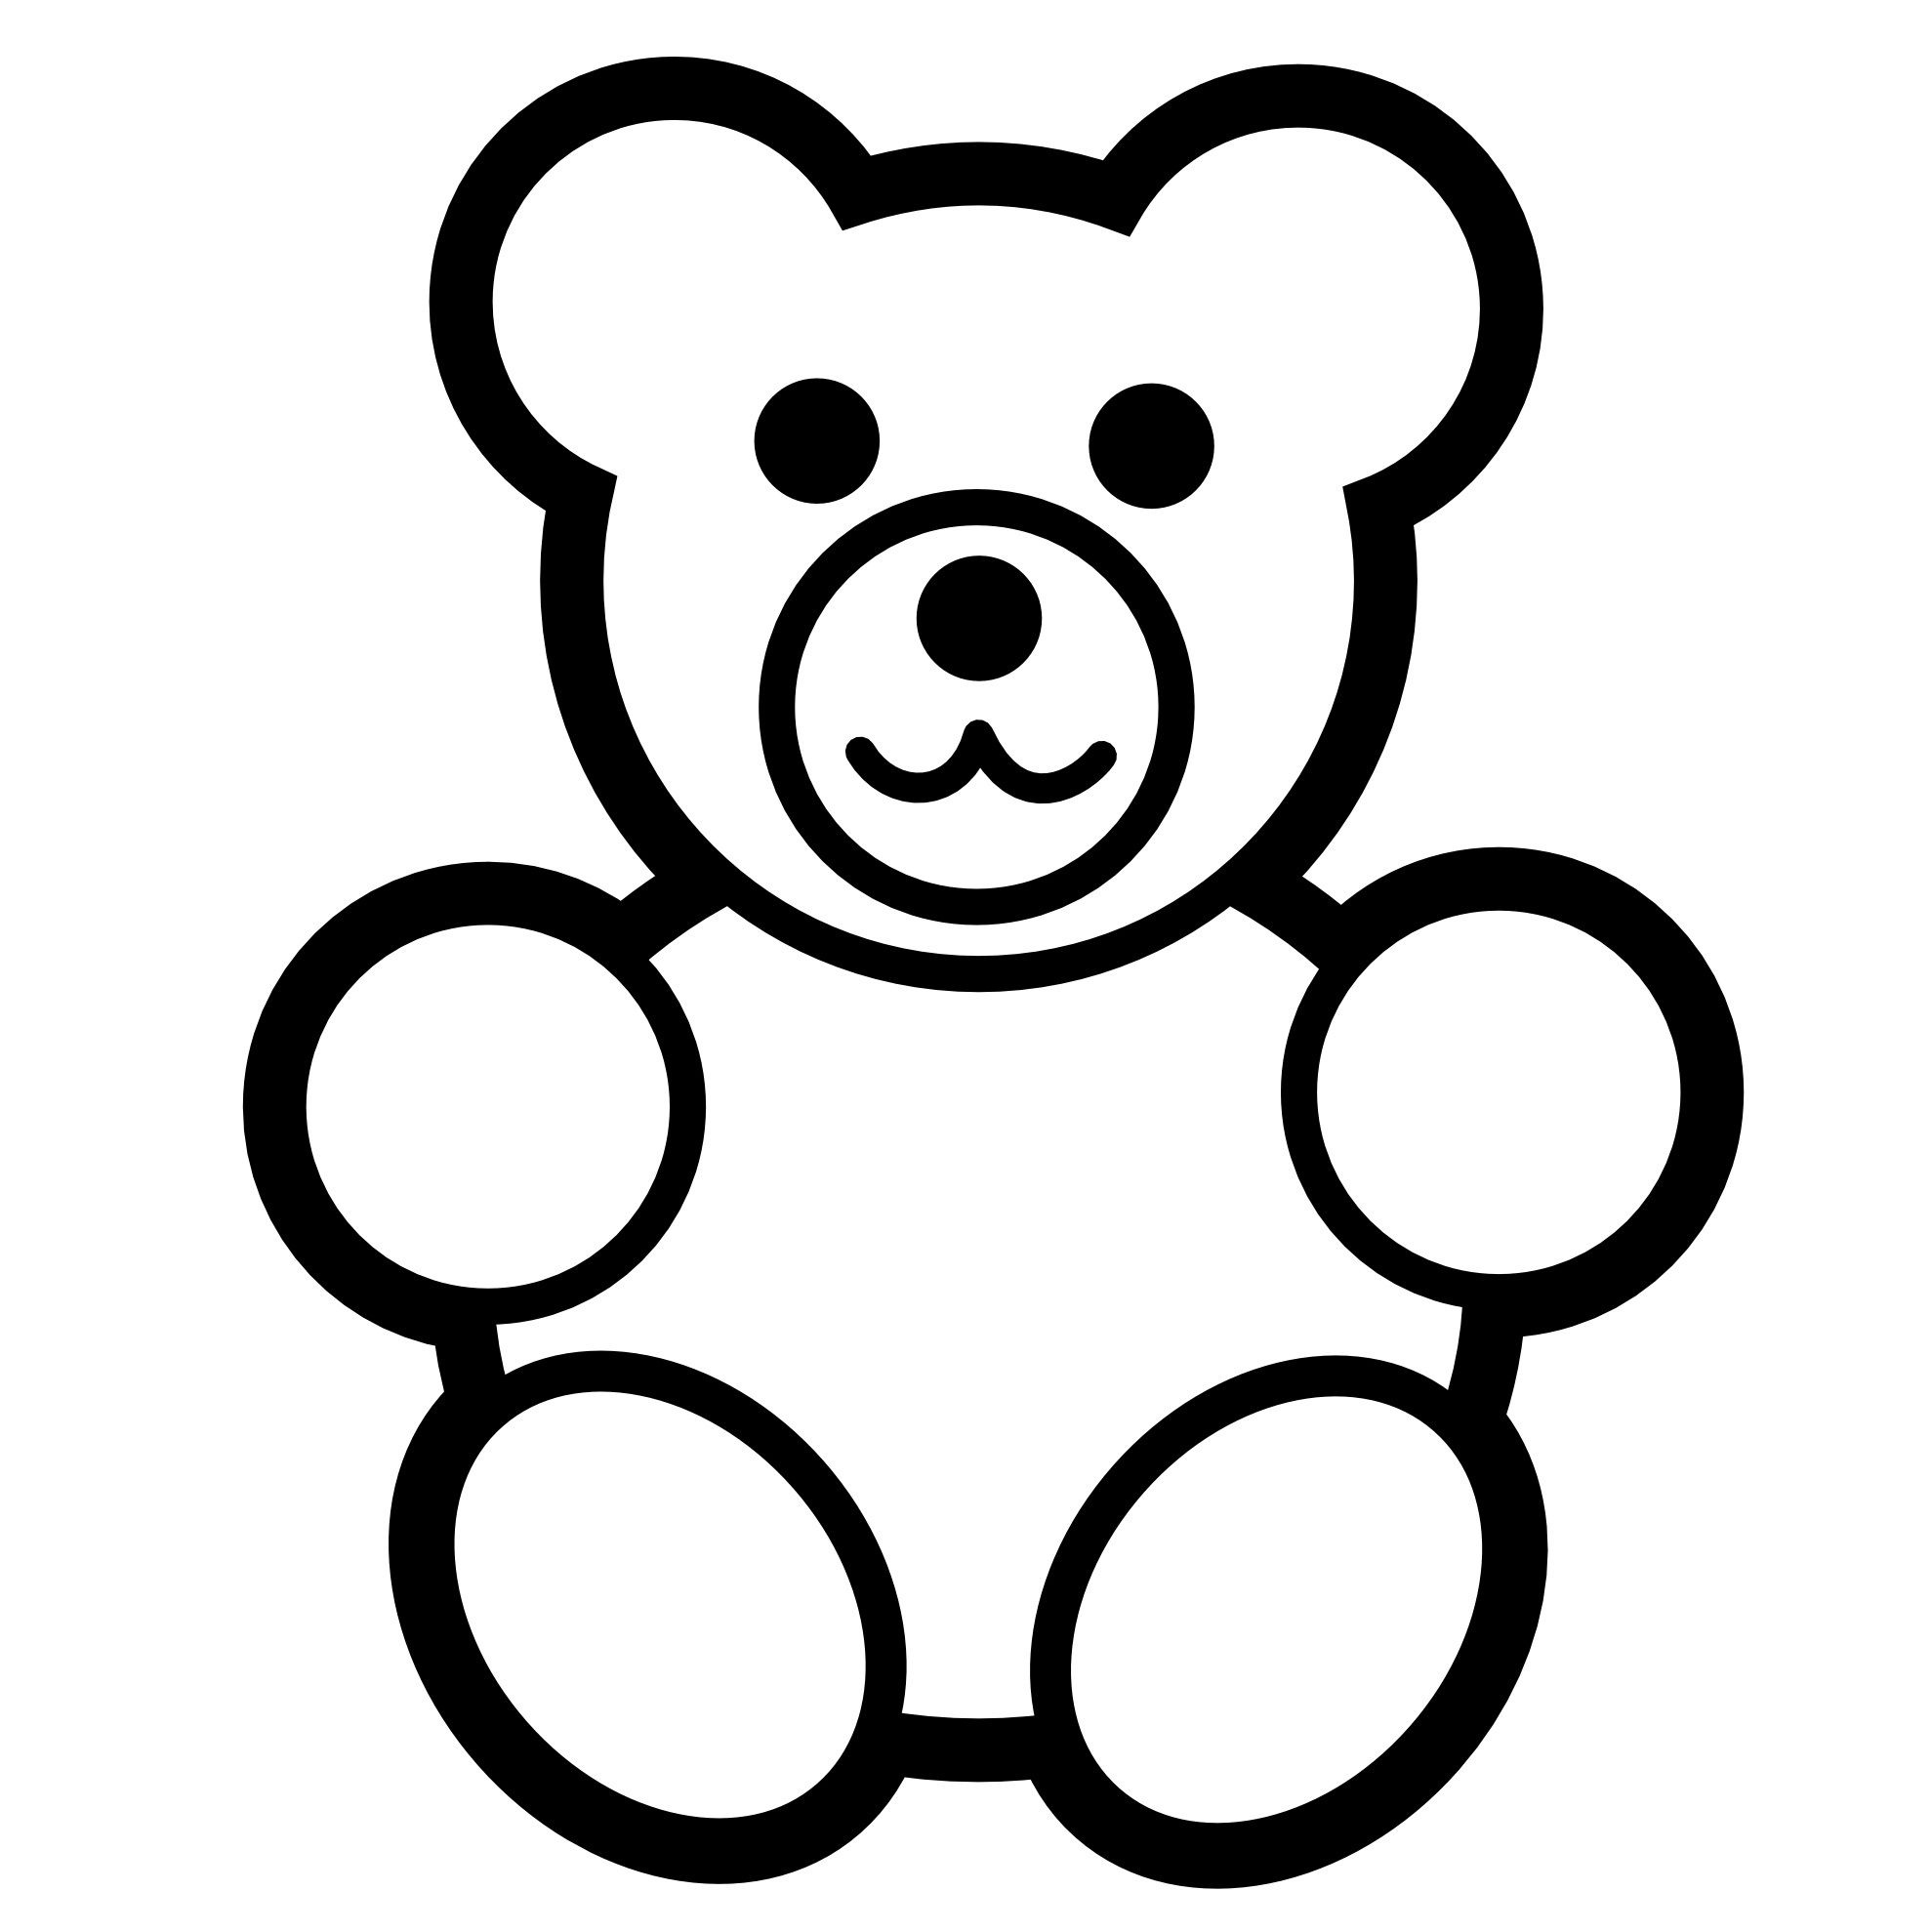 21 Wonderful Image Of Bear Coloring Pages Entitlementtrap Com Teddy Bear Coloring Pages Bear Coloring Pages Bear Coloring Pages Free Printable